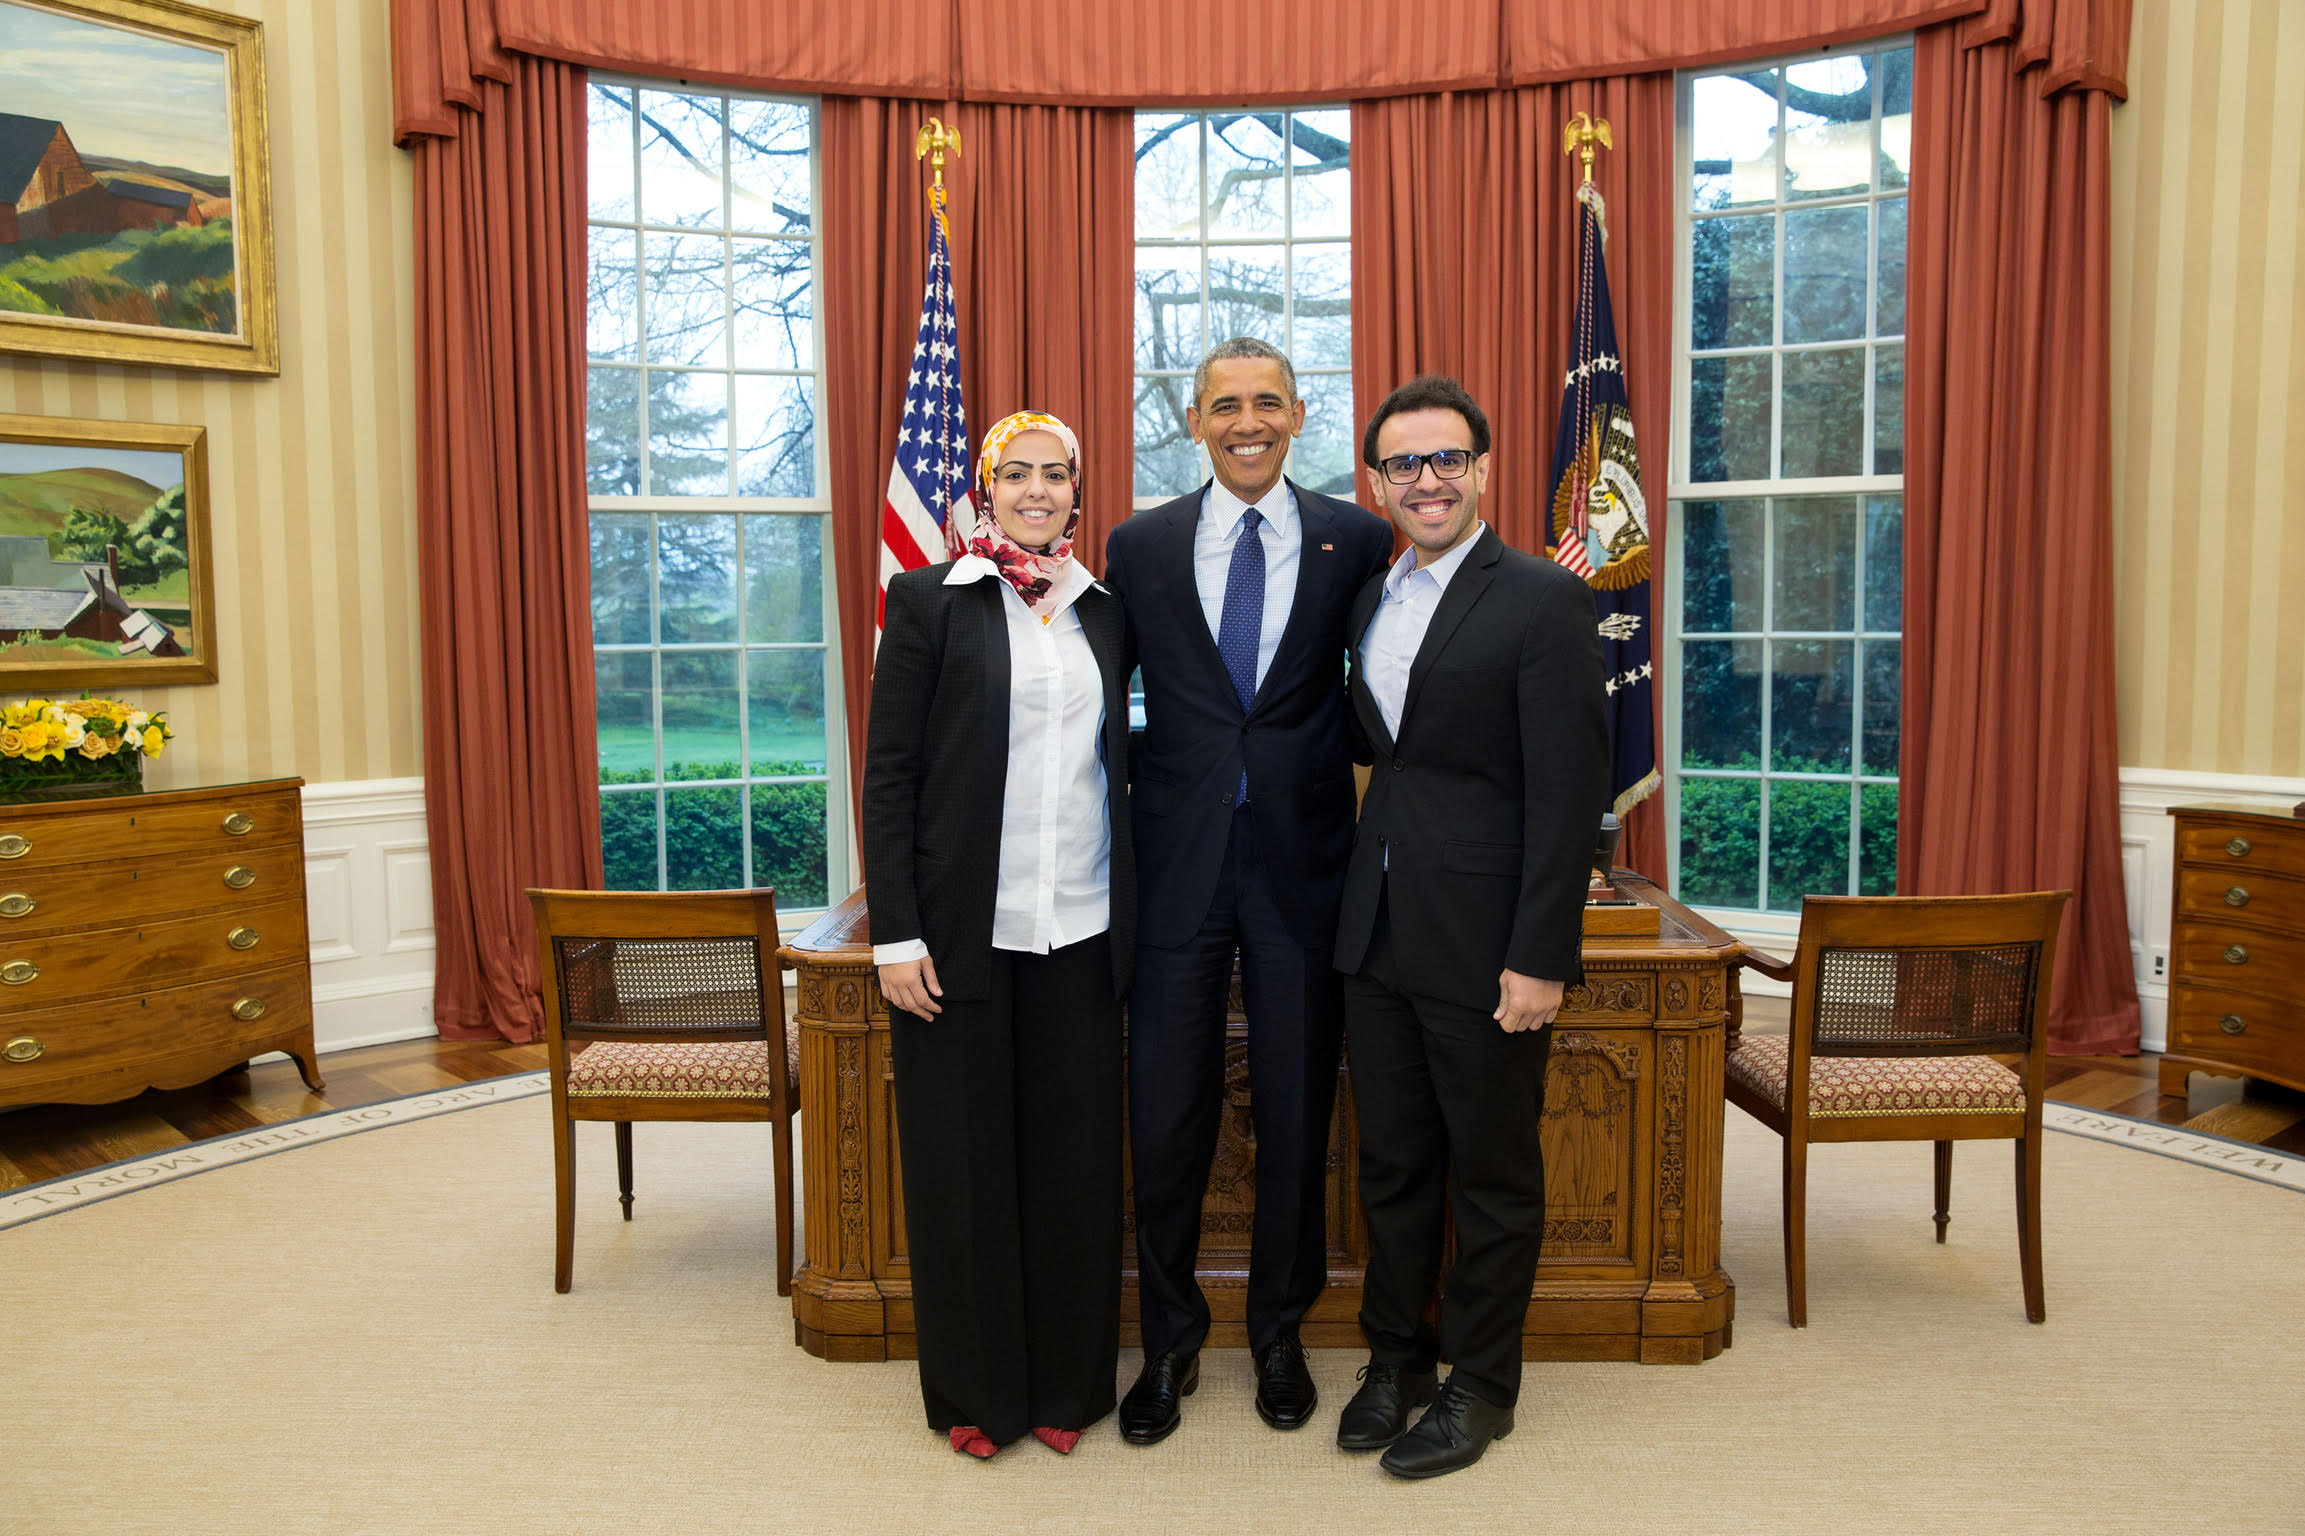 Soltan poses for a photo in the Oval Office with then-U.S. President Barack Obama